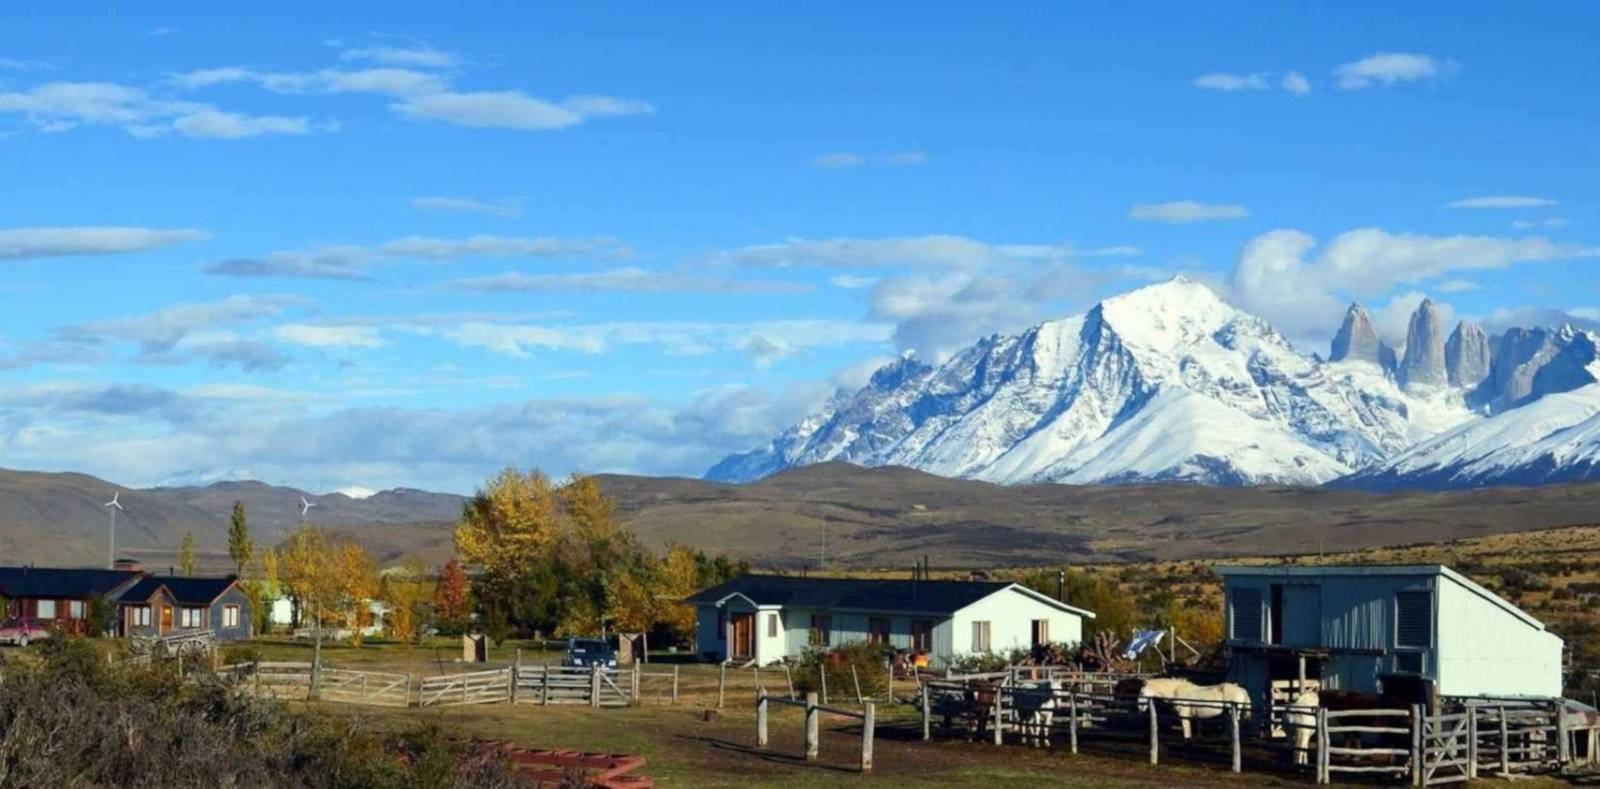 Stay on a working ranch at Estancia Tercera Barranca in Torres del Paine.